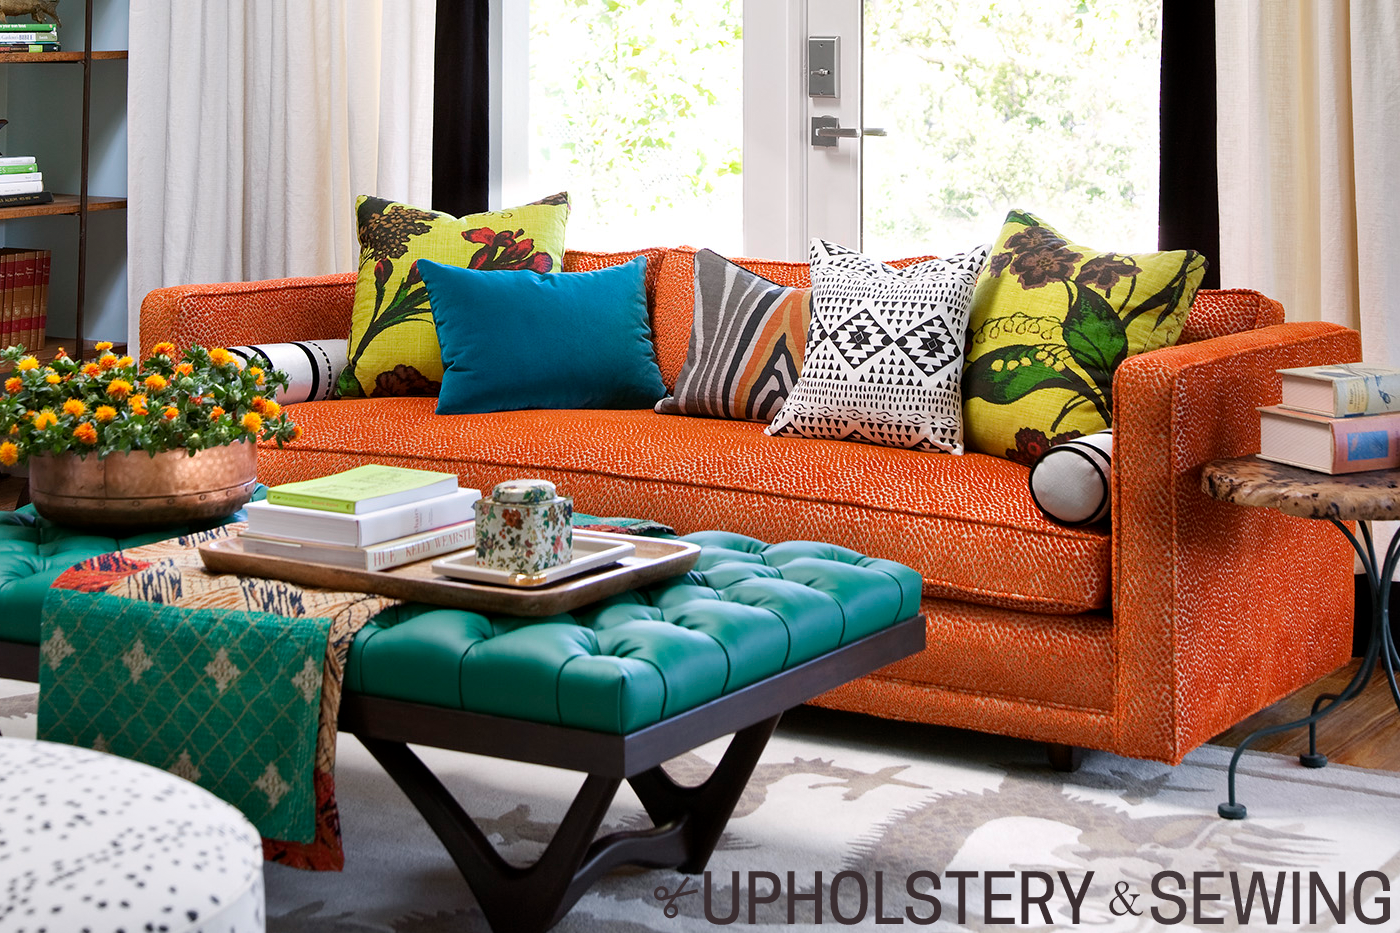 couch reupholstery los angeles service disposition alloworigin accesskeyid upholstery wm